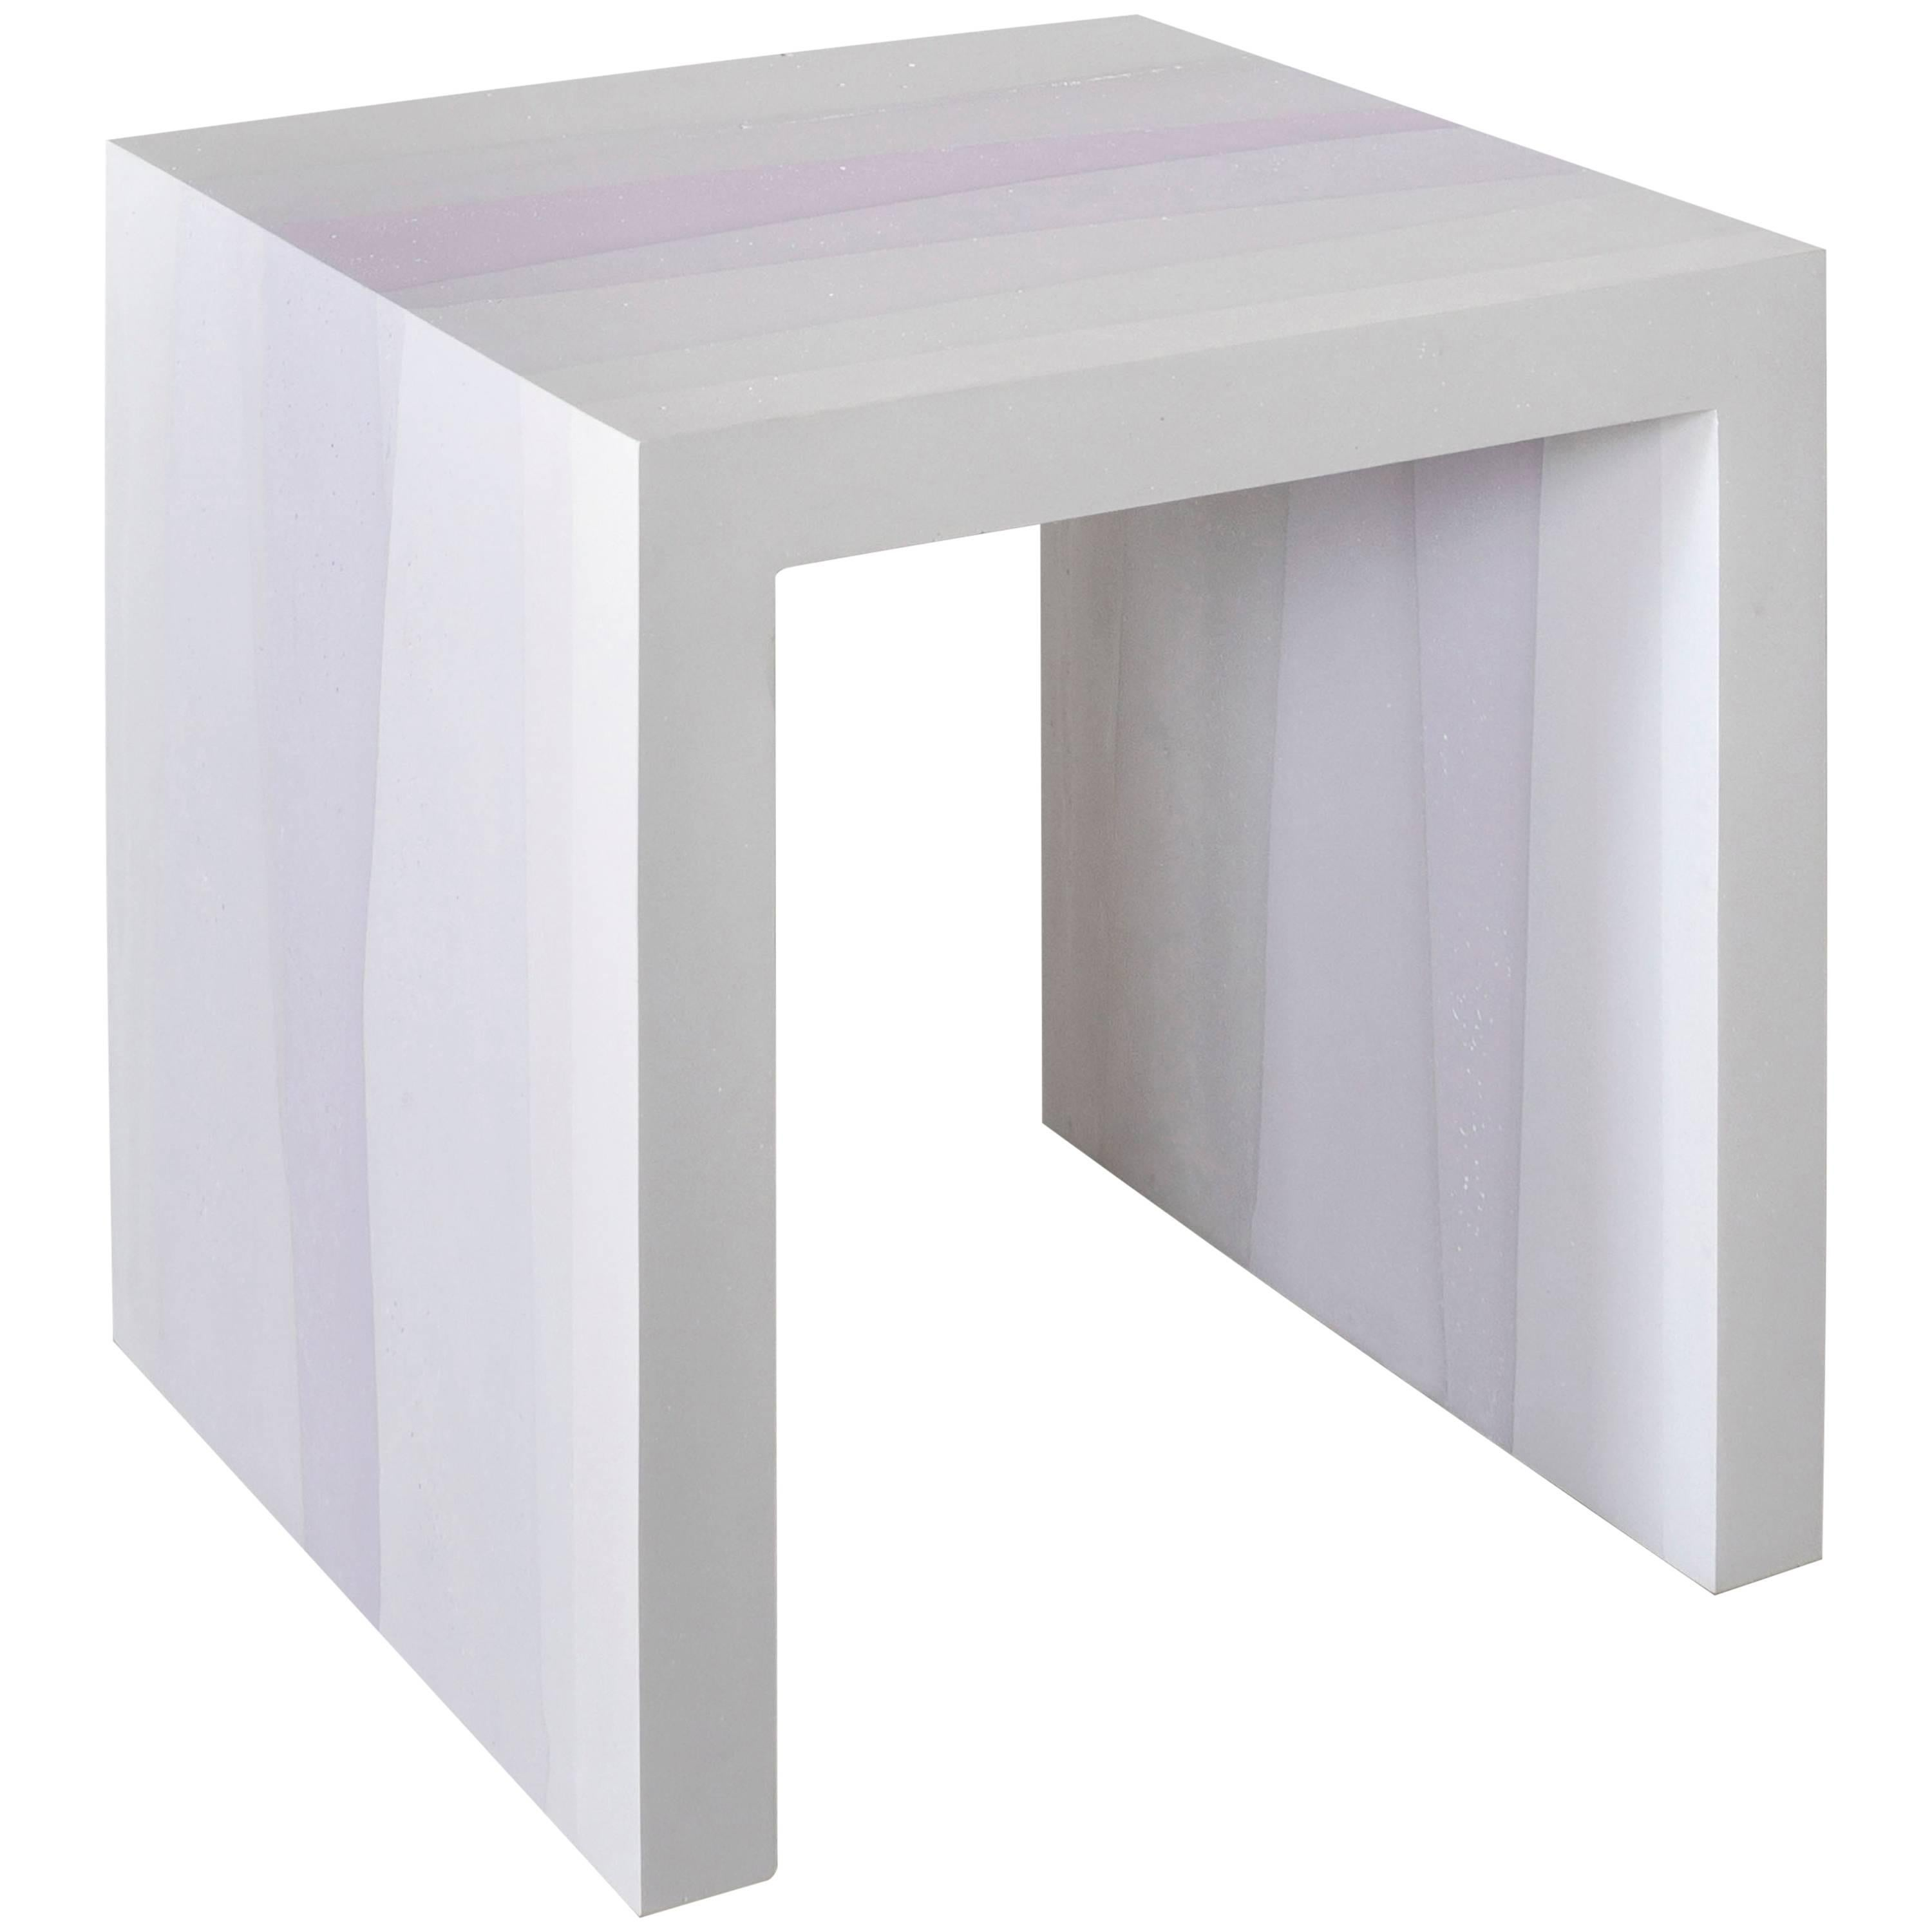 Cement side table Solid Log Fade Side Table Lavender Cement By Fernando Mastrangelo For Sale 1stdibs Fade Side Table Lavender Cement By Fernando Mastrangelo For Sale At